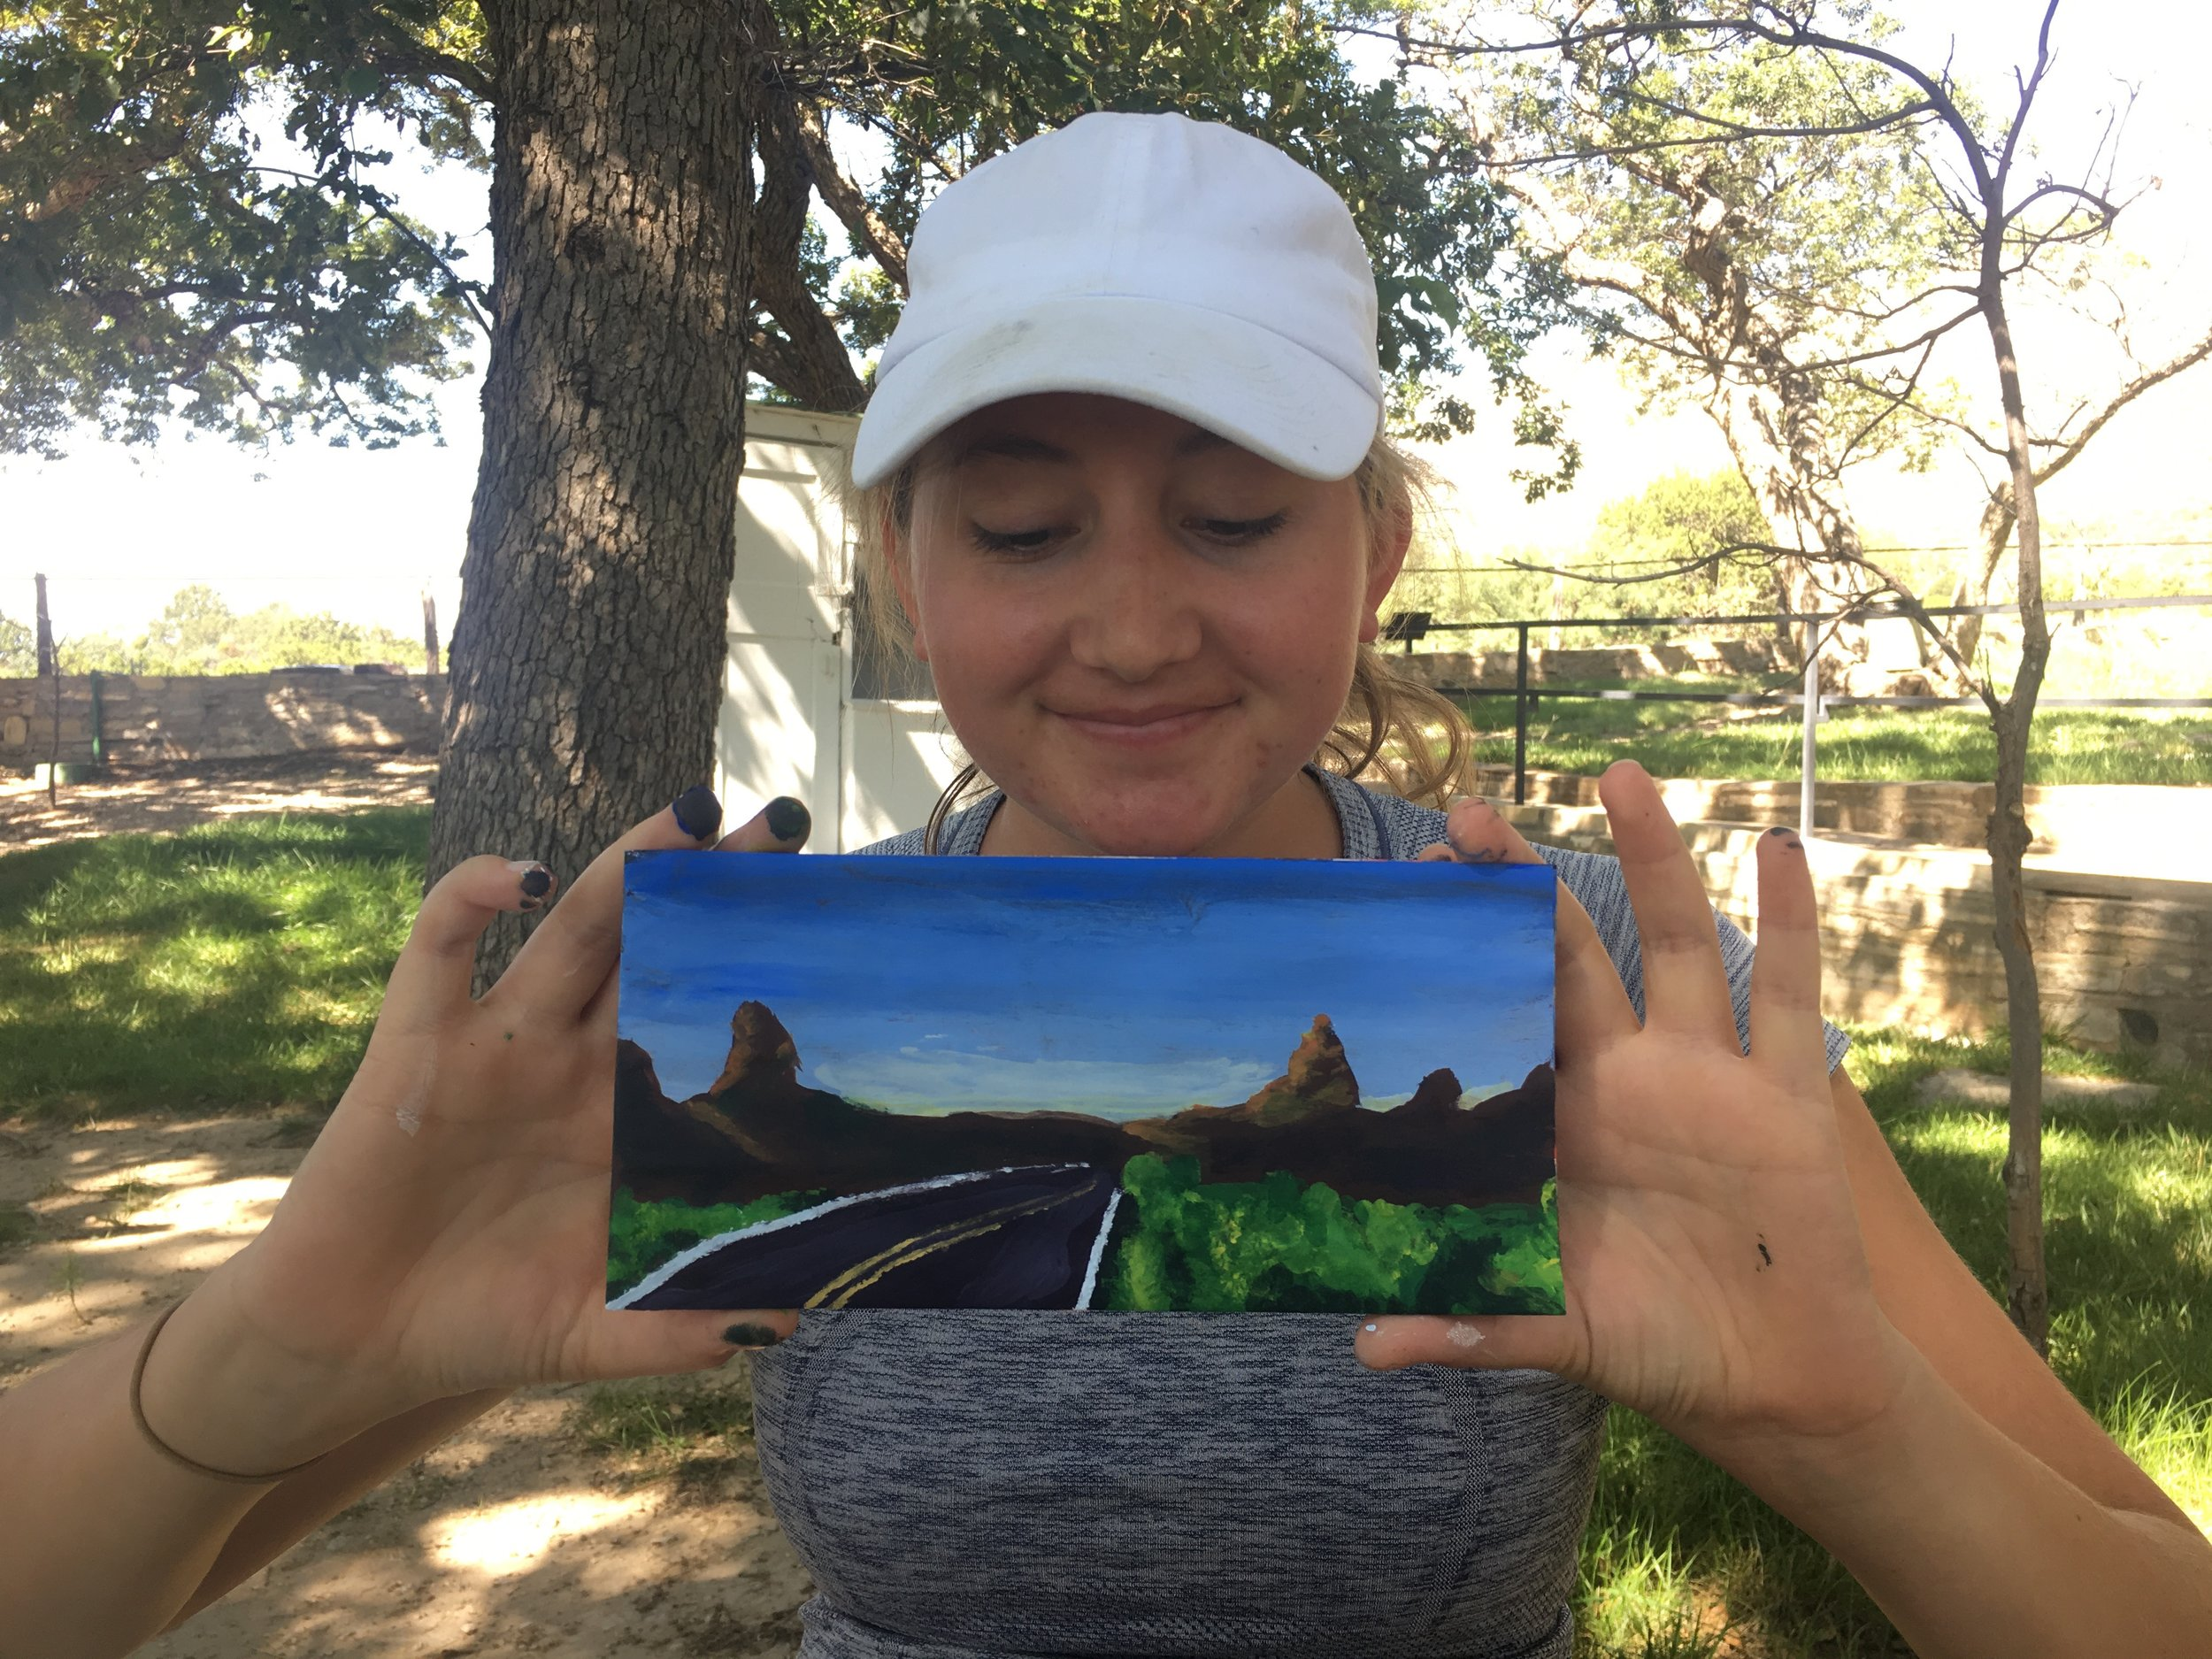 Hannah painted Big Bend on a GUMO map to display the road trip from park to park!